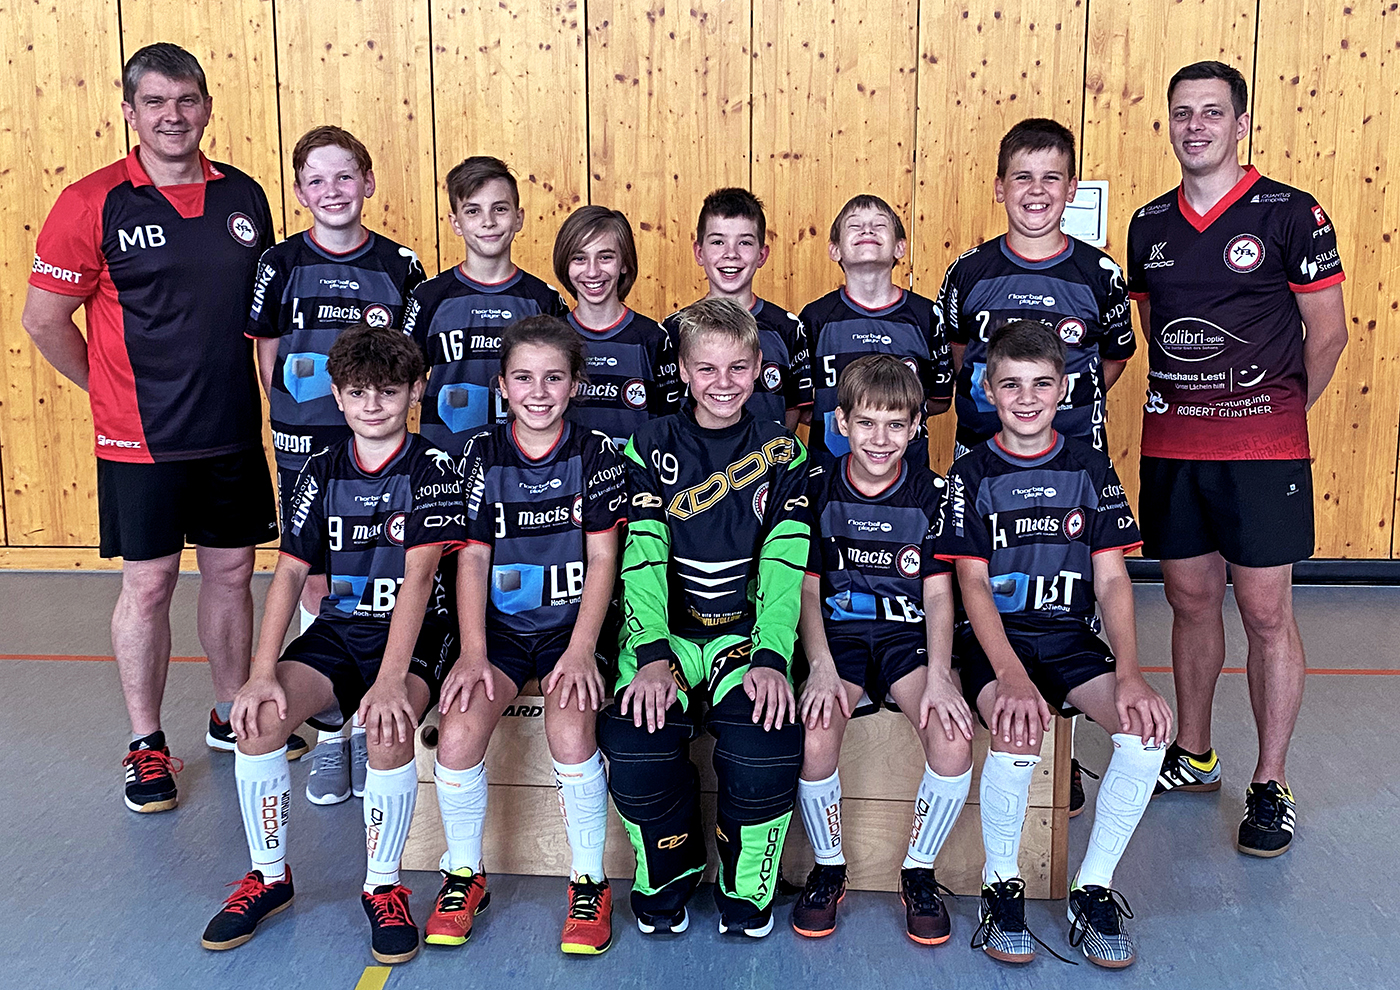 https://floorball-mfbc.de/wp-content/uploads/2020/09/U13-MFBC-Grimma-21.jpg